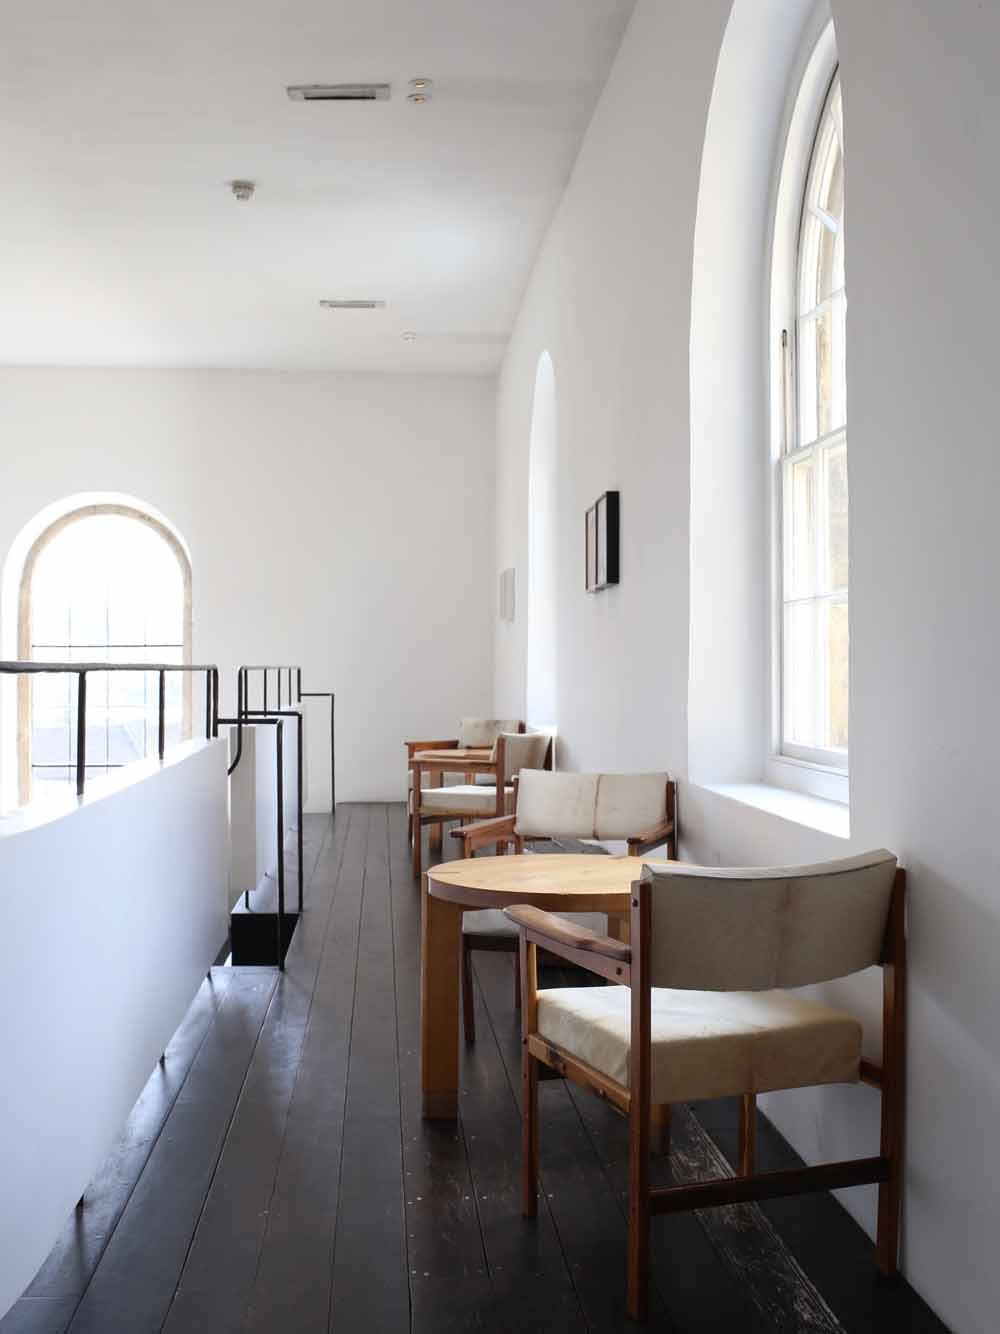 At the Chapel | Bruton